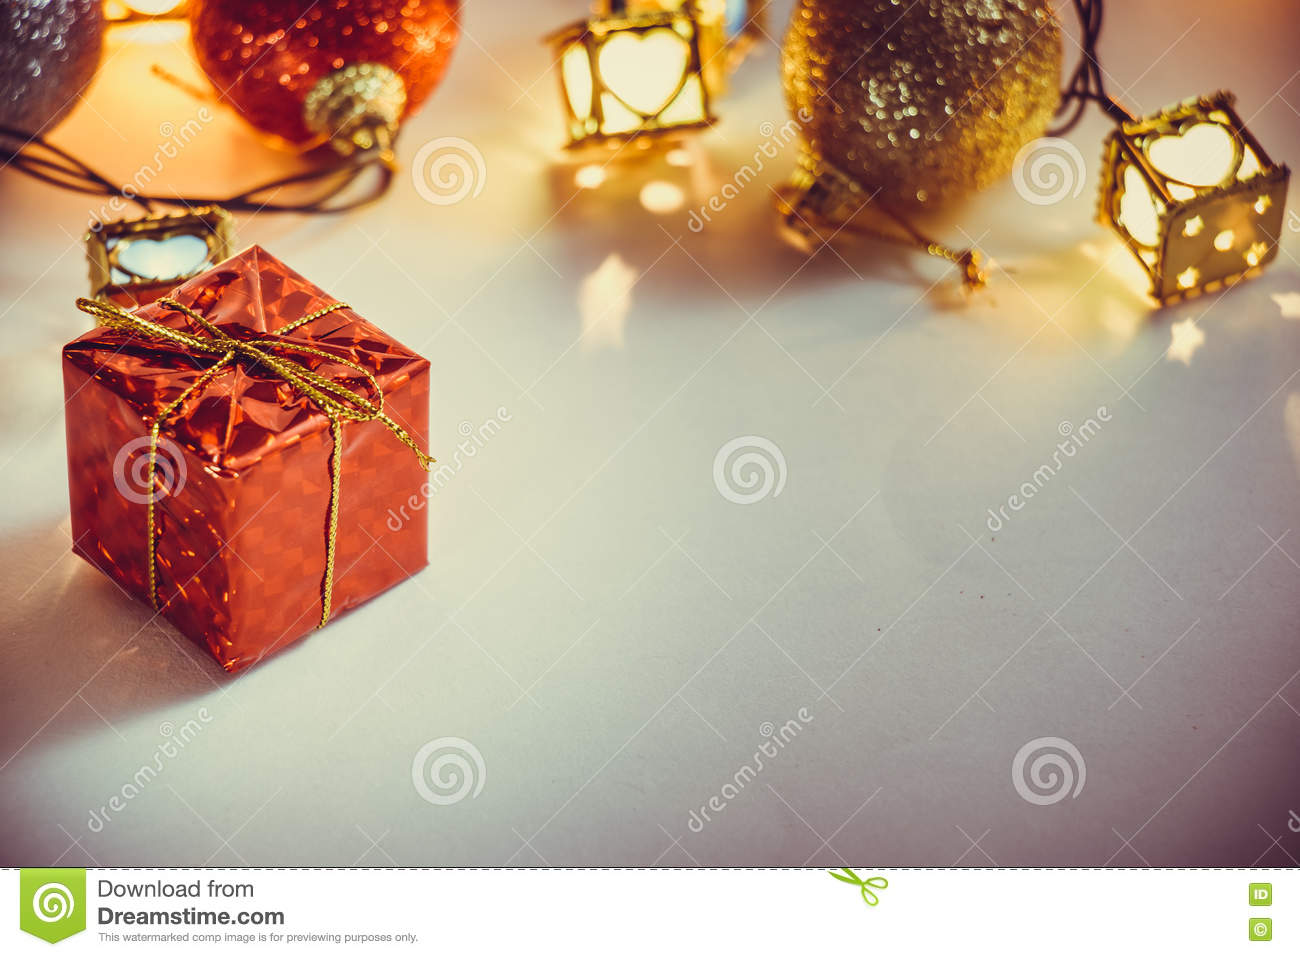 Ornament and Christmas item decorate in holy night